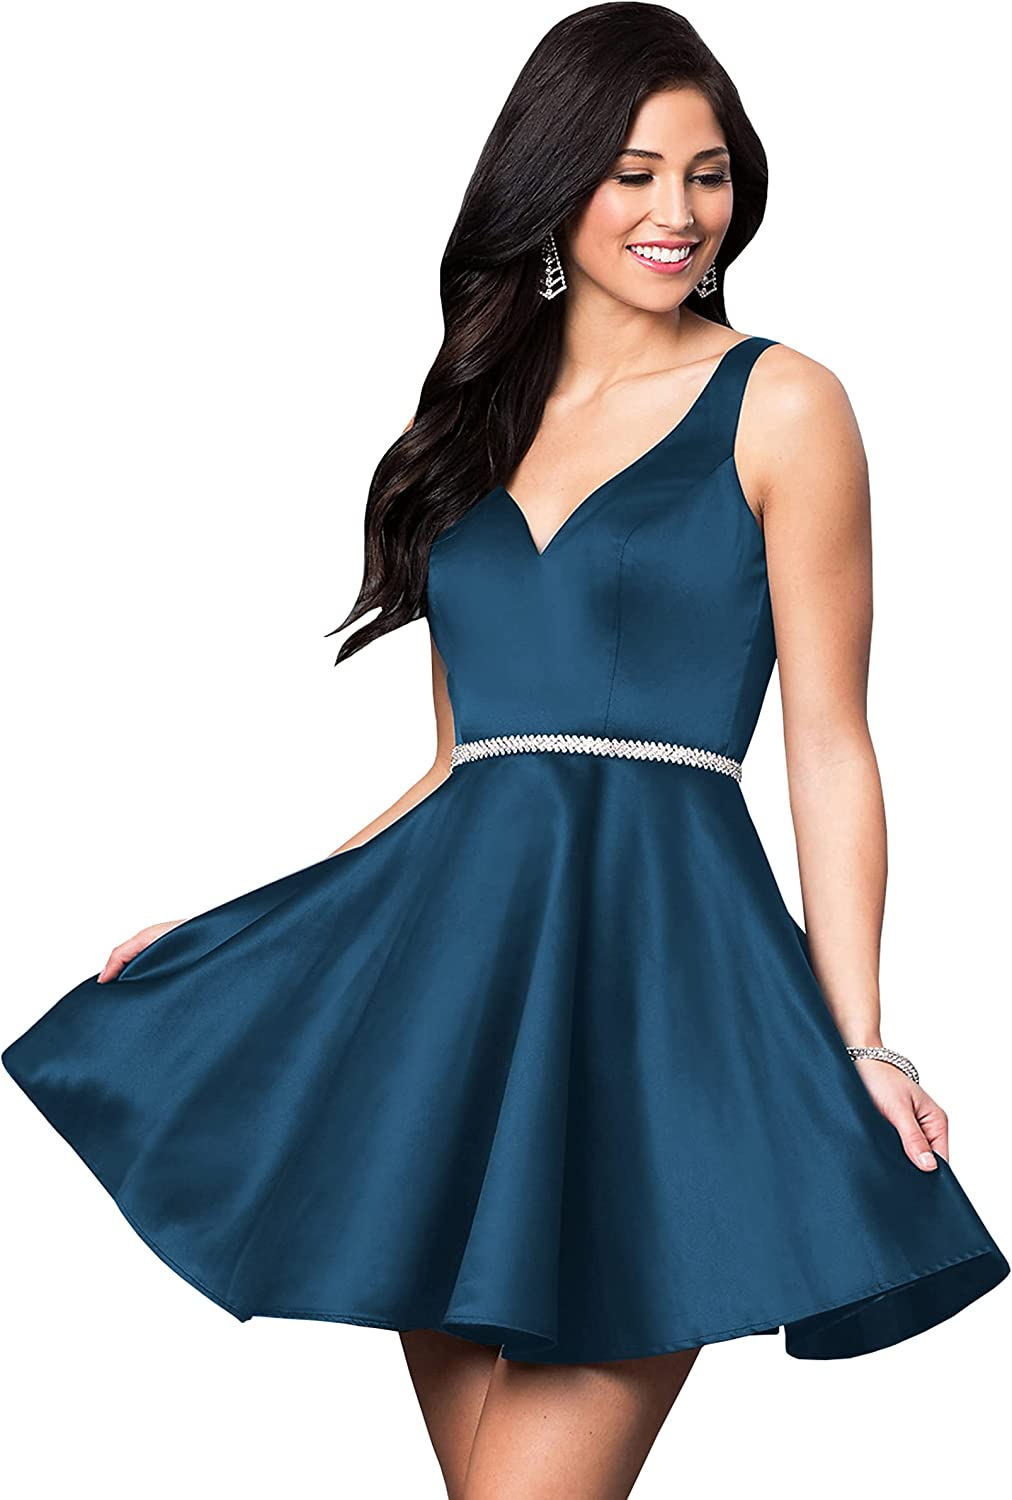 BOLENSEY Women's V-Neck Satin Short Homecoming Dress with Pockets Beaded Formal Evening Prom Gown